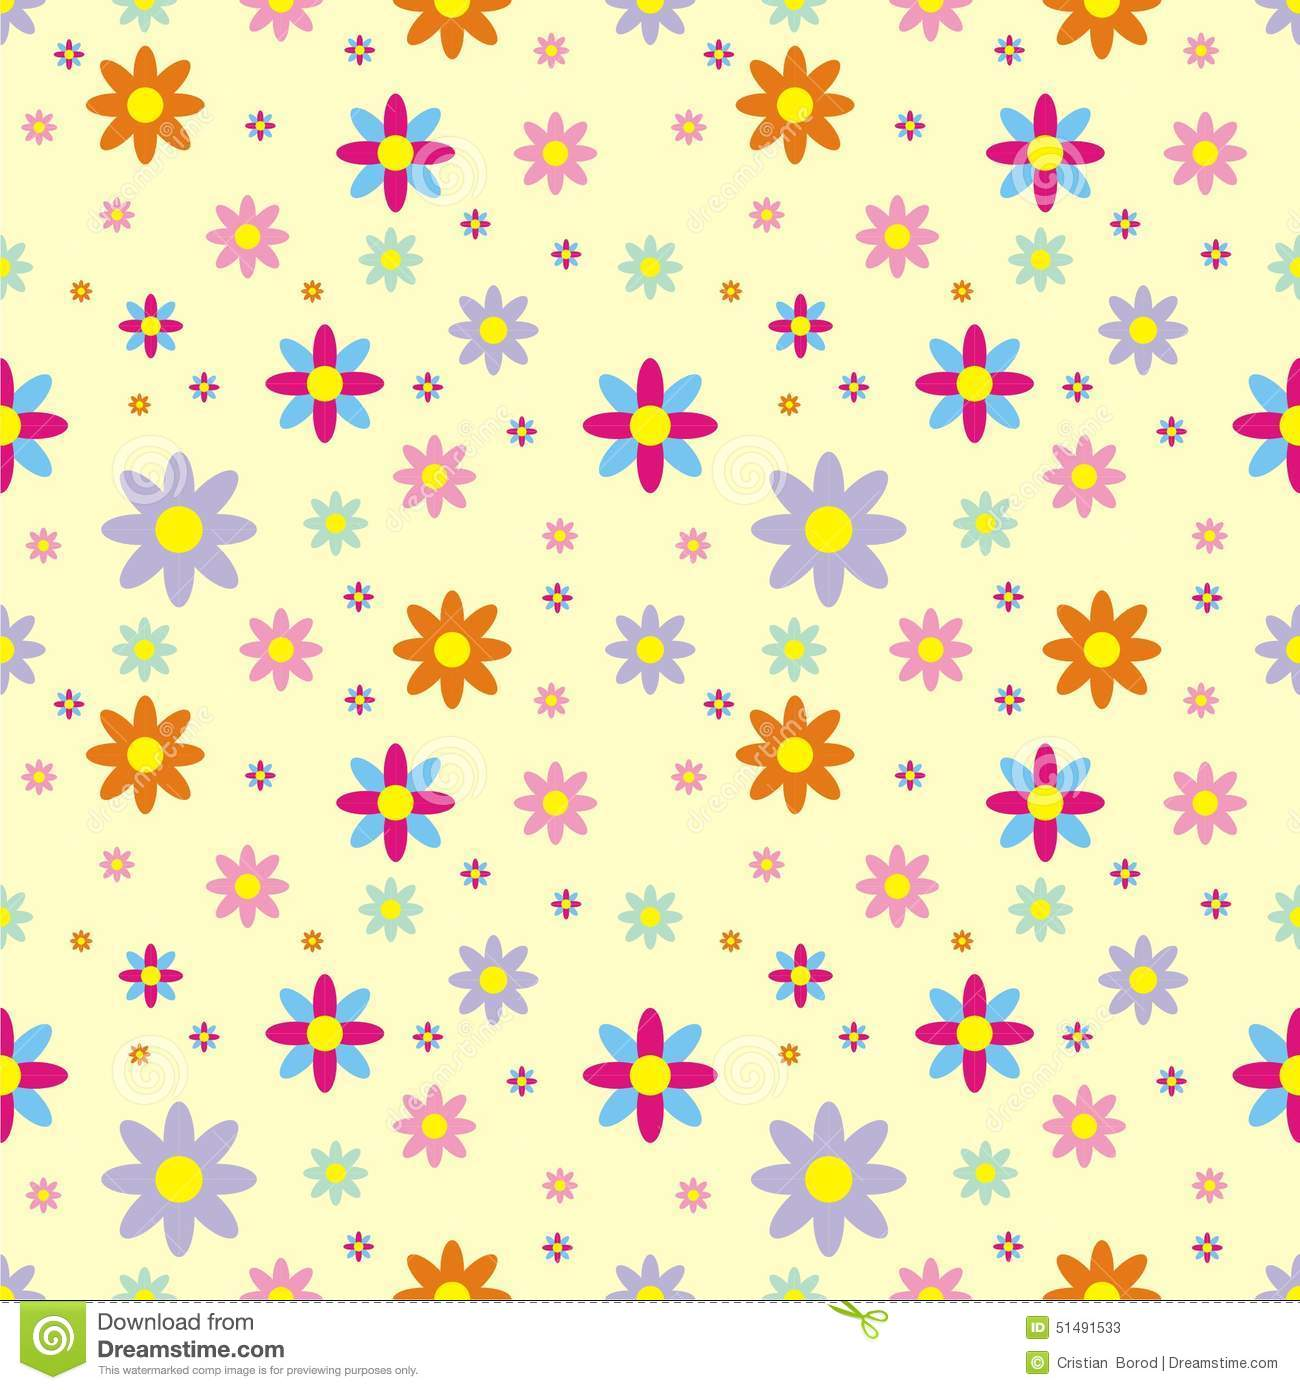 Flower pattern background stock illustration illustration of flower pattern background mightylinksfo